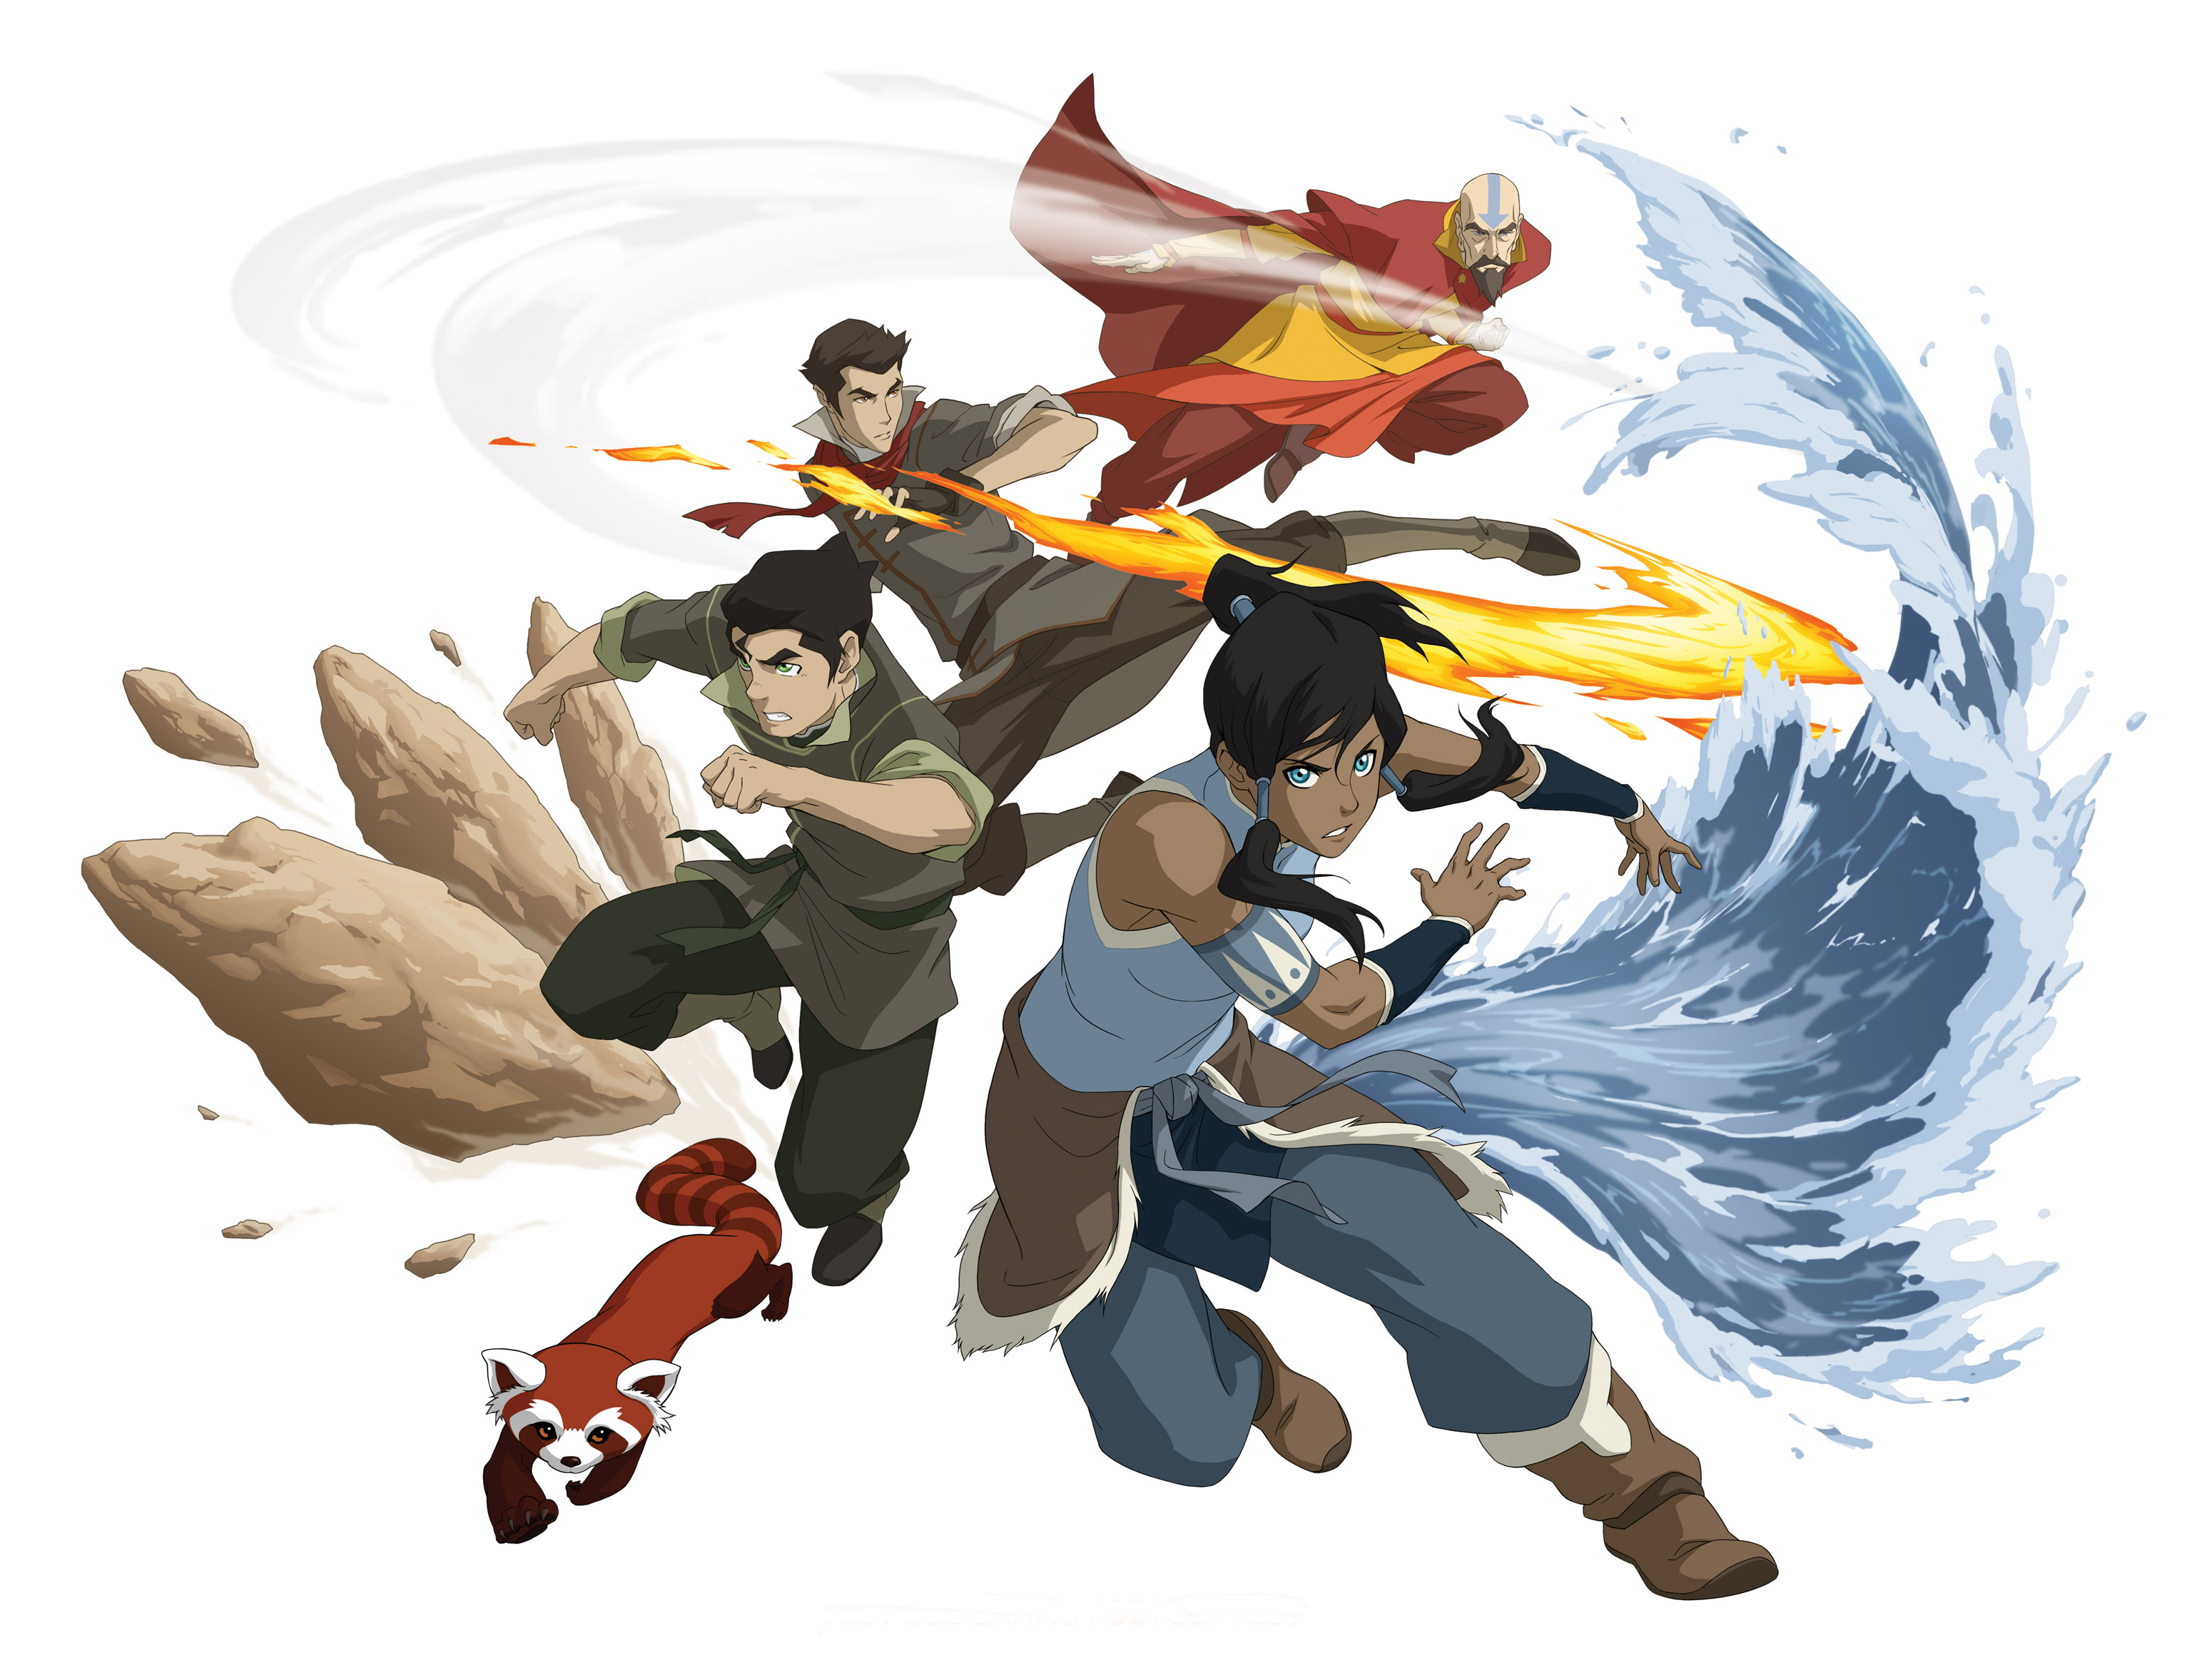 Complex female characters in kids tv avatar korra spark movement political corruption and manipulation voltagebd Image collections